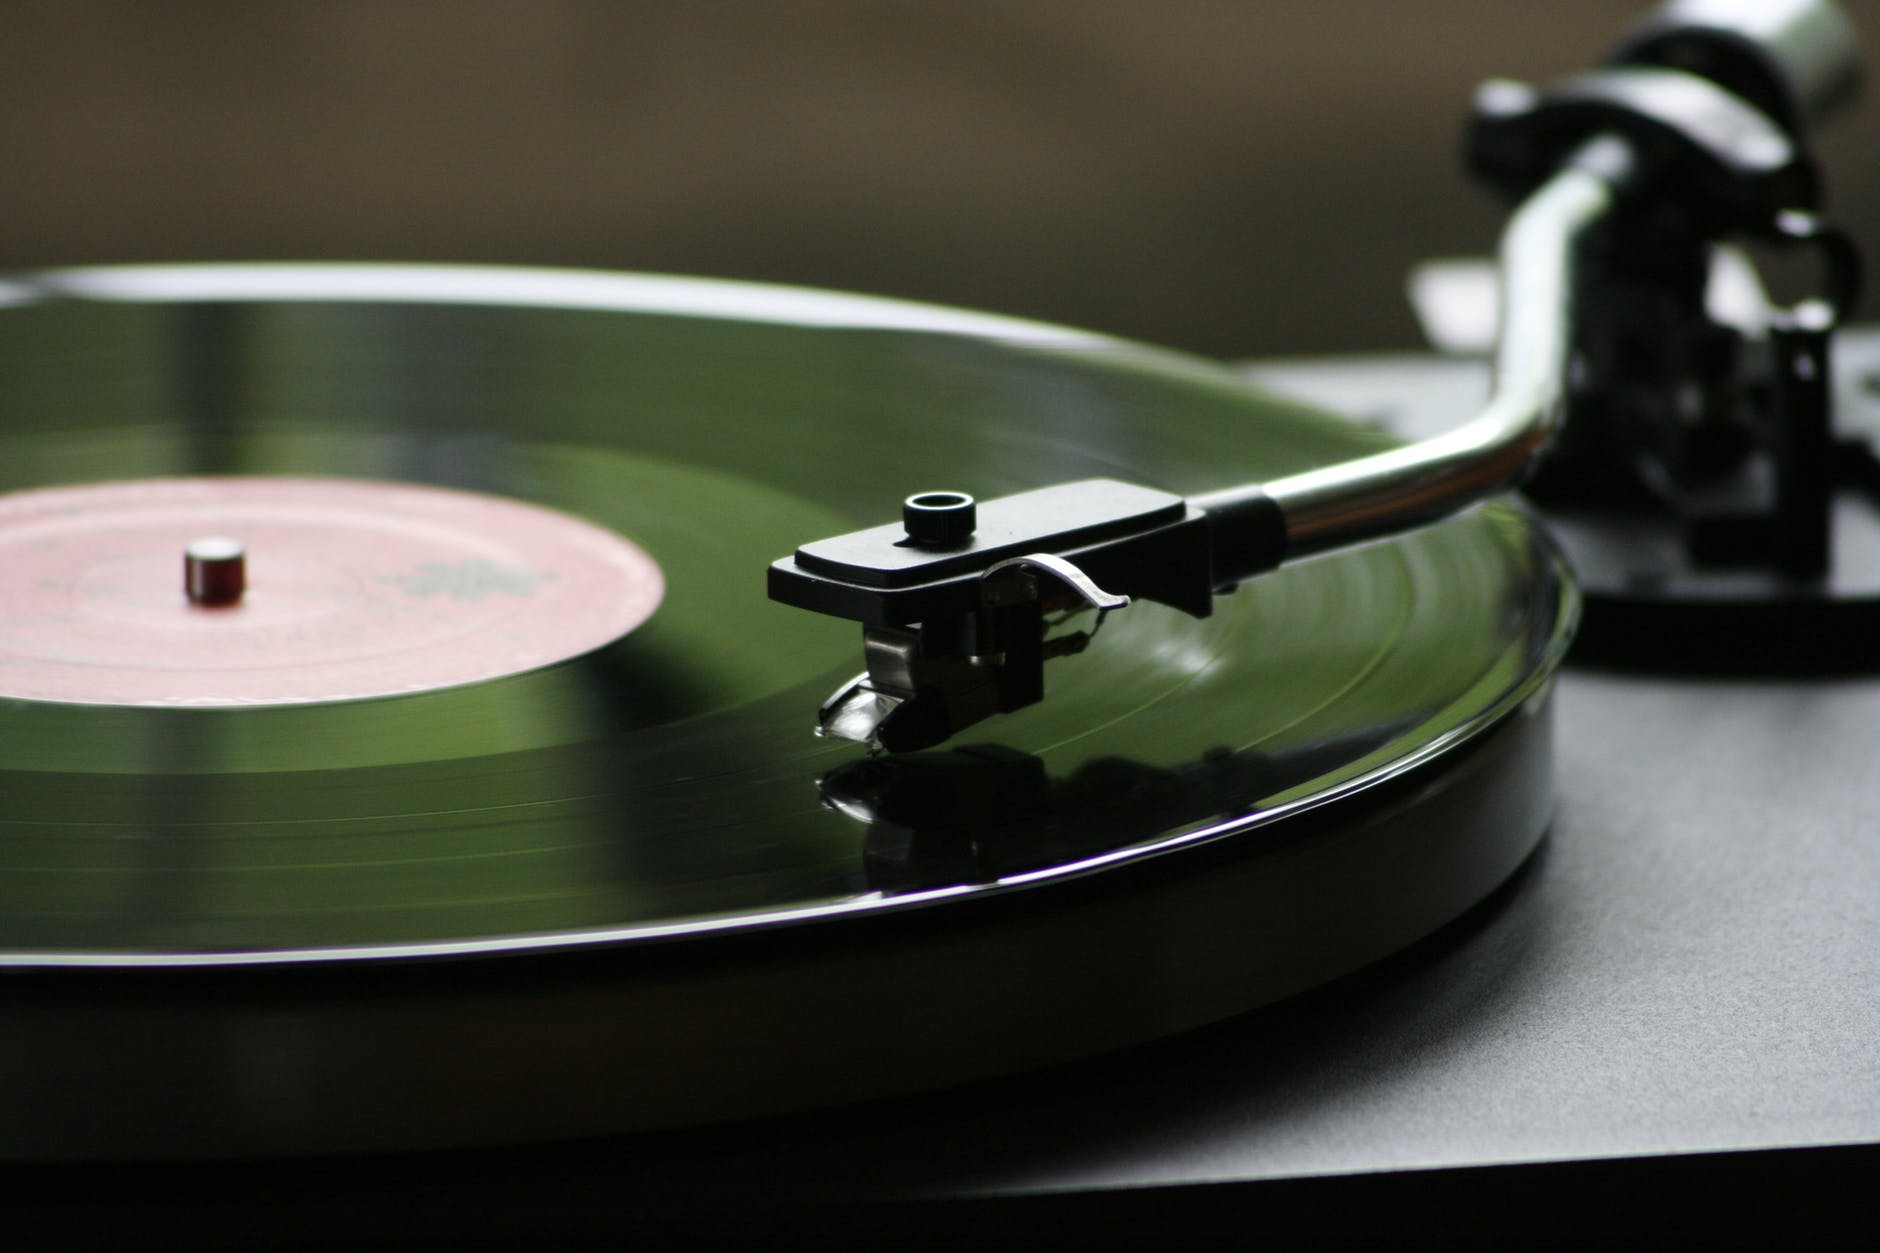 vinyl record player playing